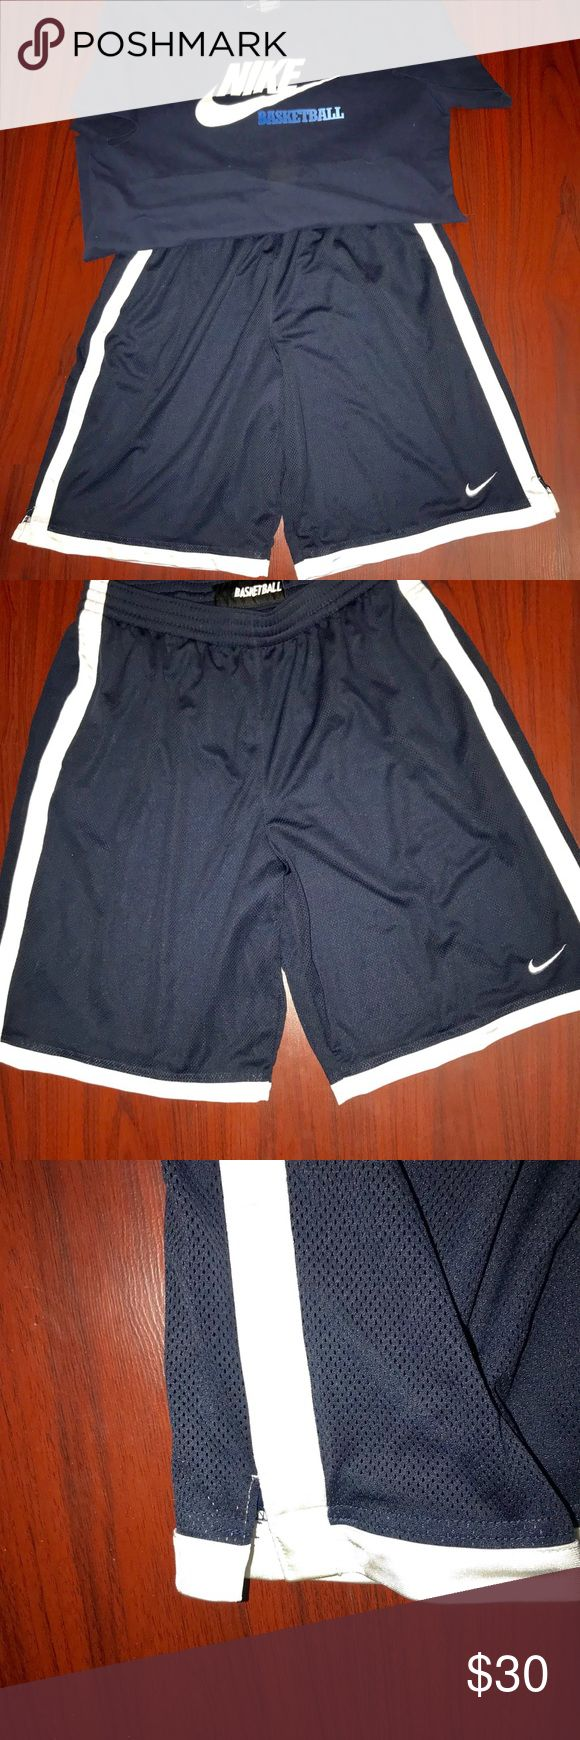 2/$30 NIKE BASKETBALL SHORTS N TEE NIKE BASKETBALL NAVY TEE N NIKE BASKETBALL NAVY ATHLETIC SHORTS WITH WHITE STRIPS SIDE POCKETS DRAWSTRING N SPLITS Nike Matching Sets